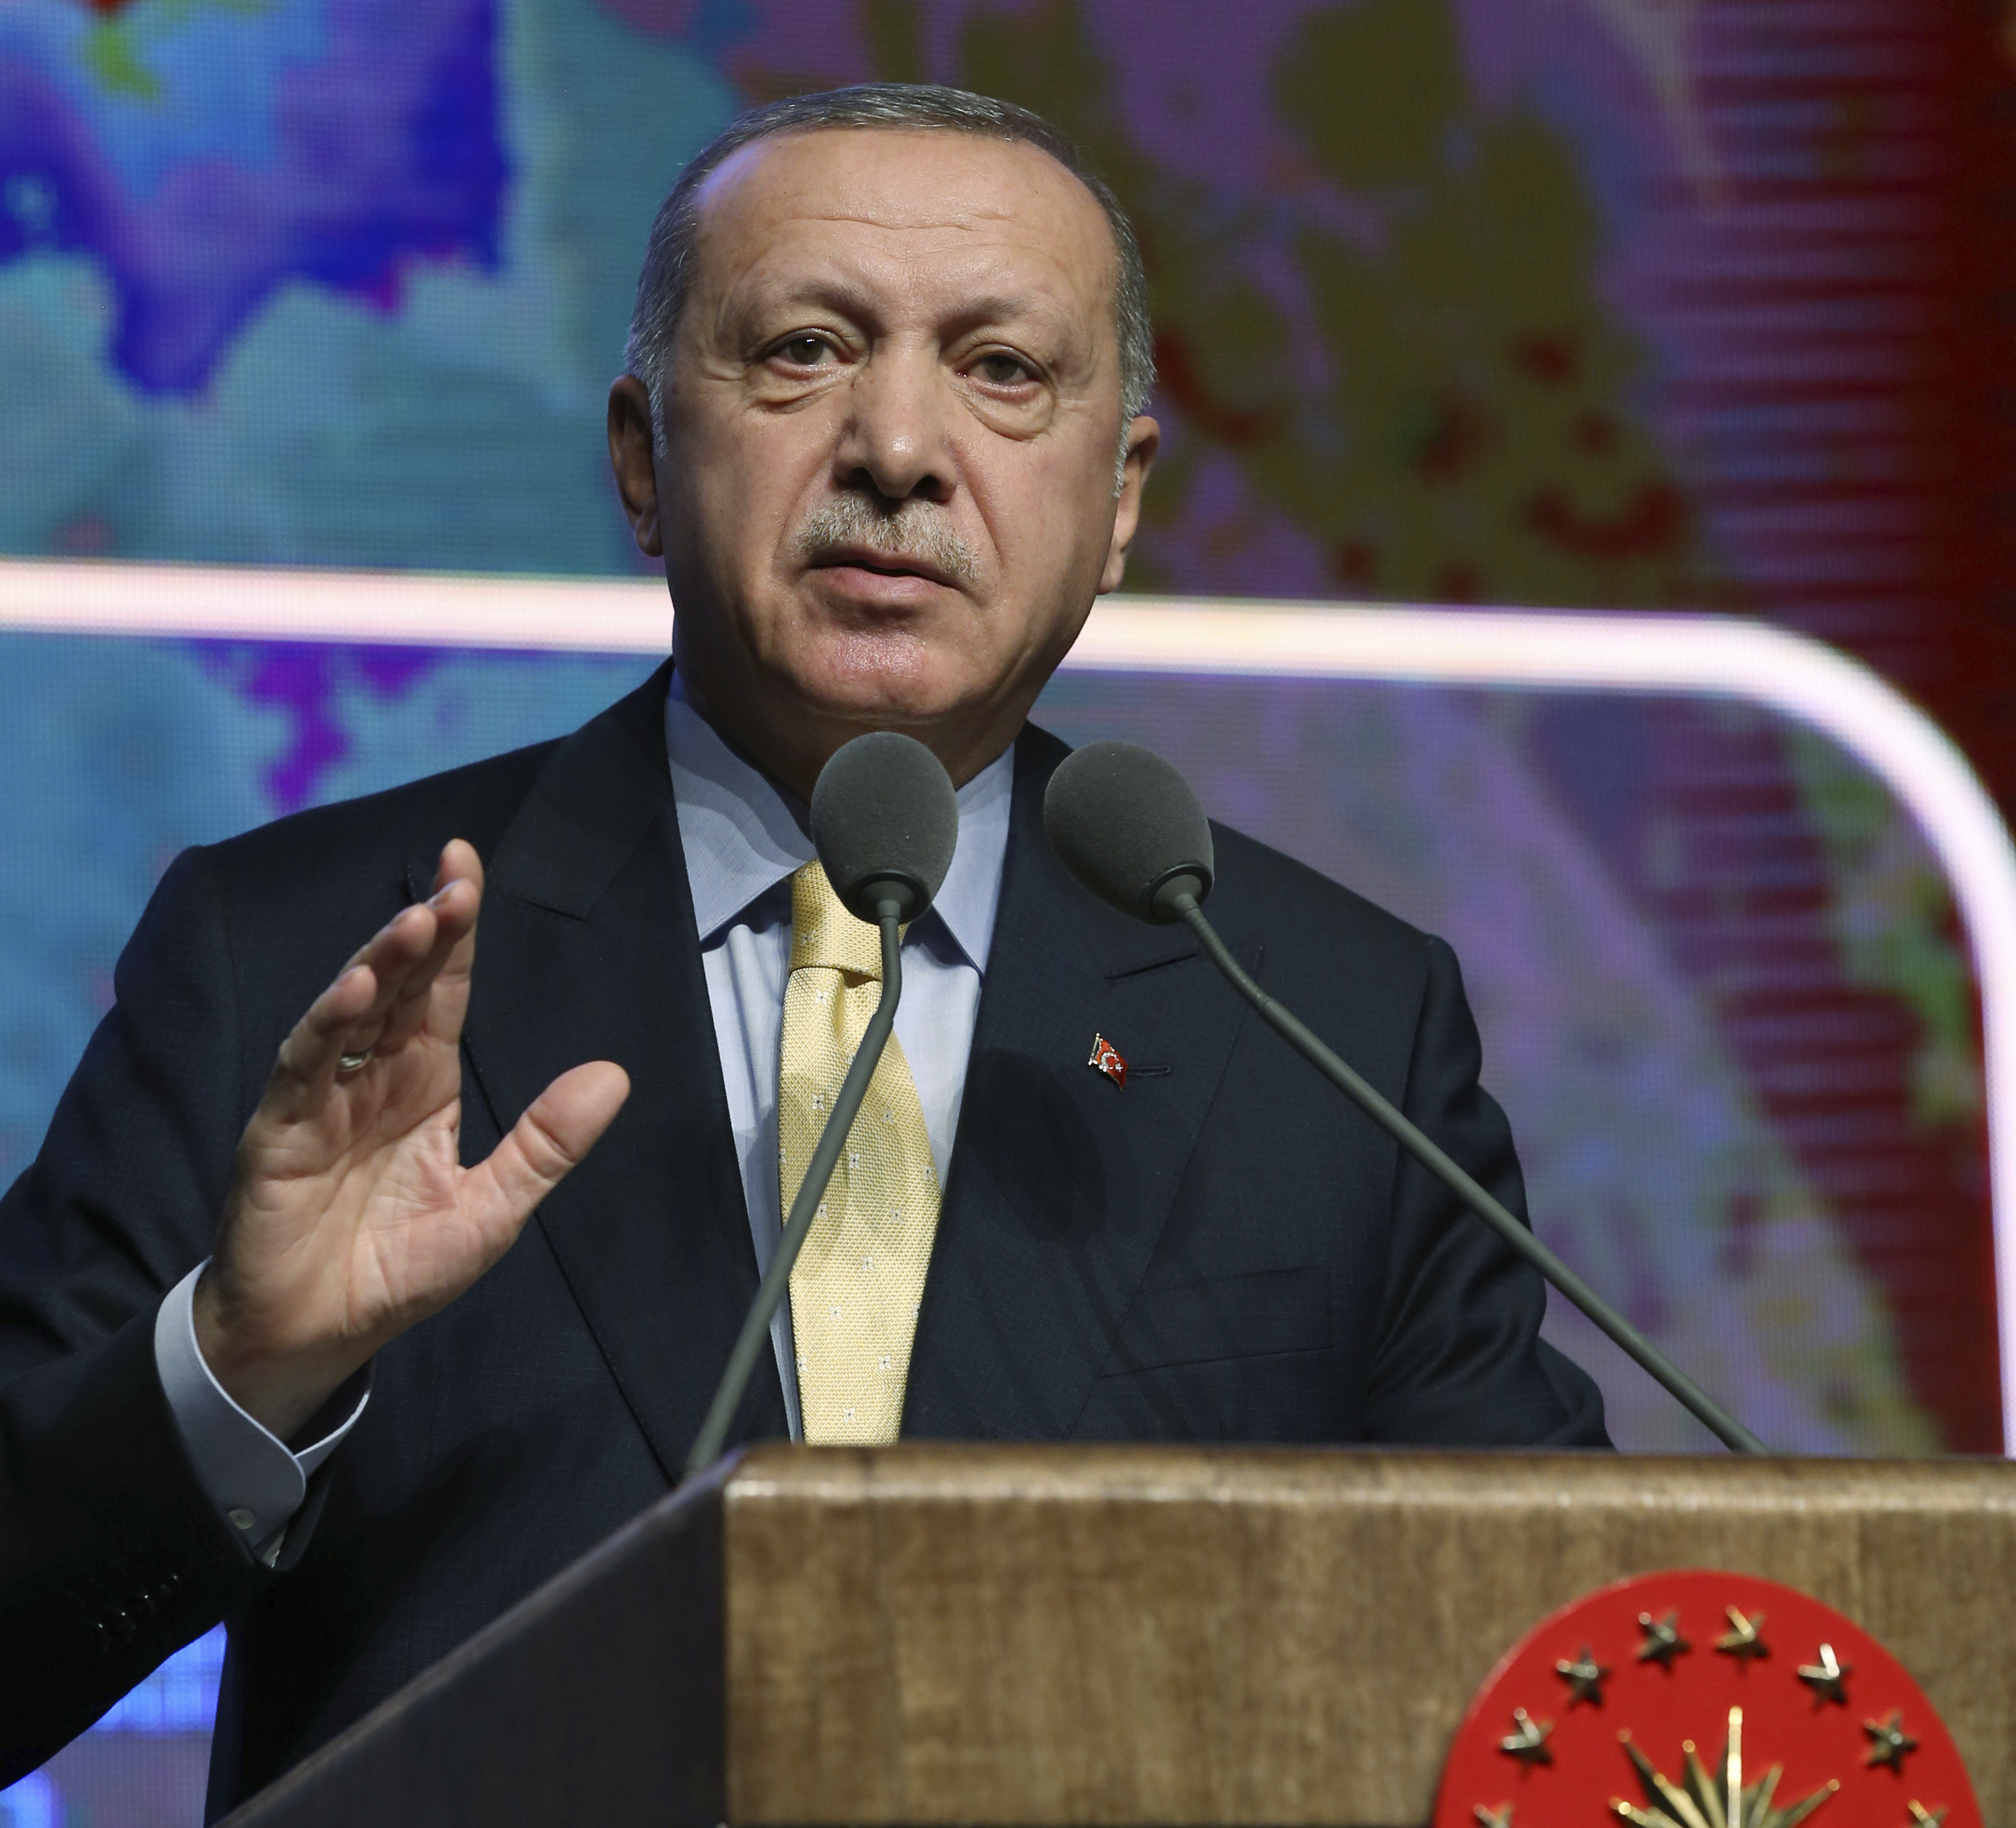 Turkish President Recep Tayyip Erdogan speaks during a meeting in Ankara, Turkey, Wednesday, Nov. 6, 2019. Erdogan says Turkey has captured a wife of the slain leader of the Islamic State group, Abu Bakr al-Baghdadi. Erdogan made the announcement while delivering a speech in Ankara on Wednesday but gave no other details.